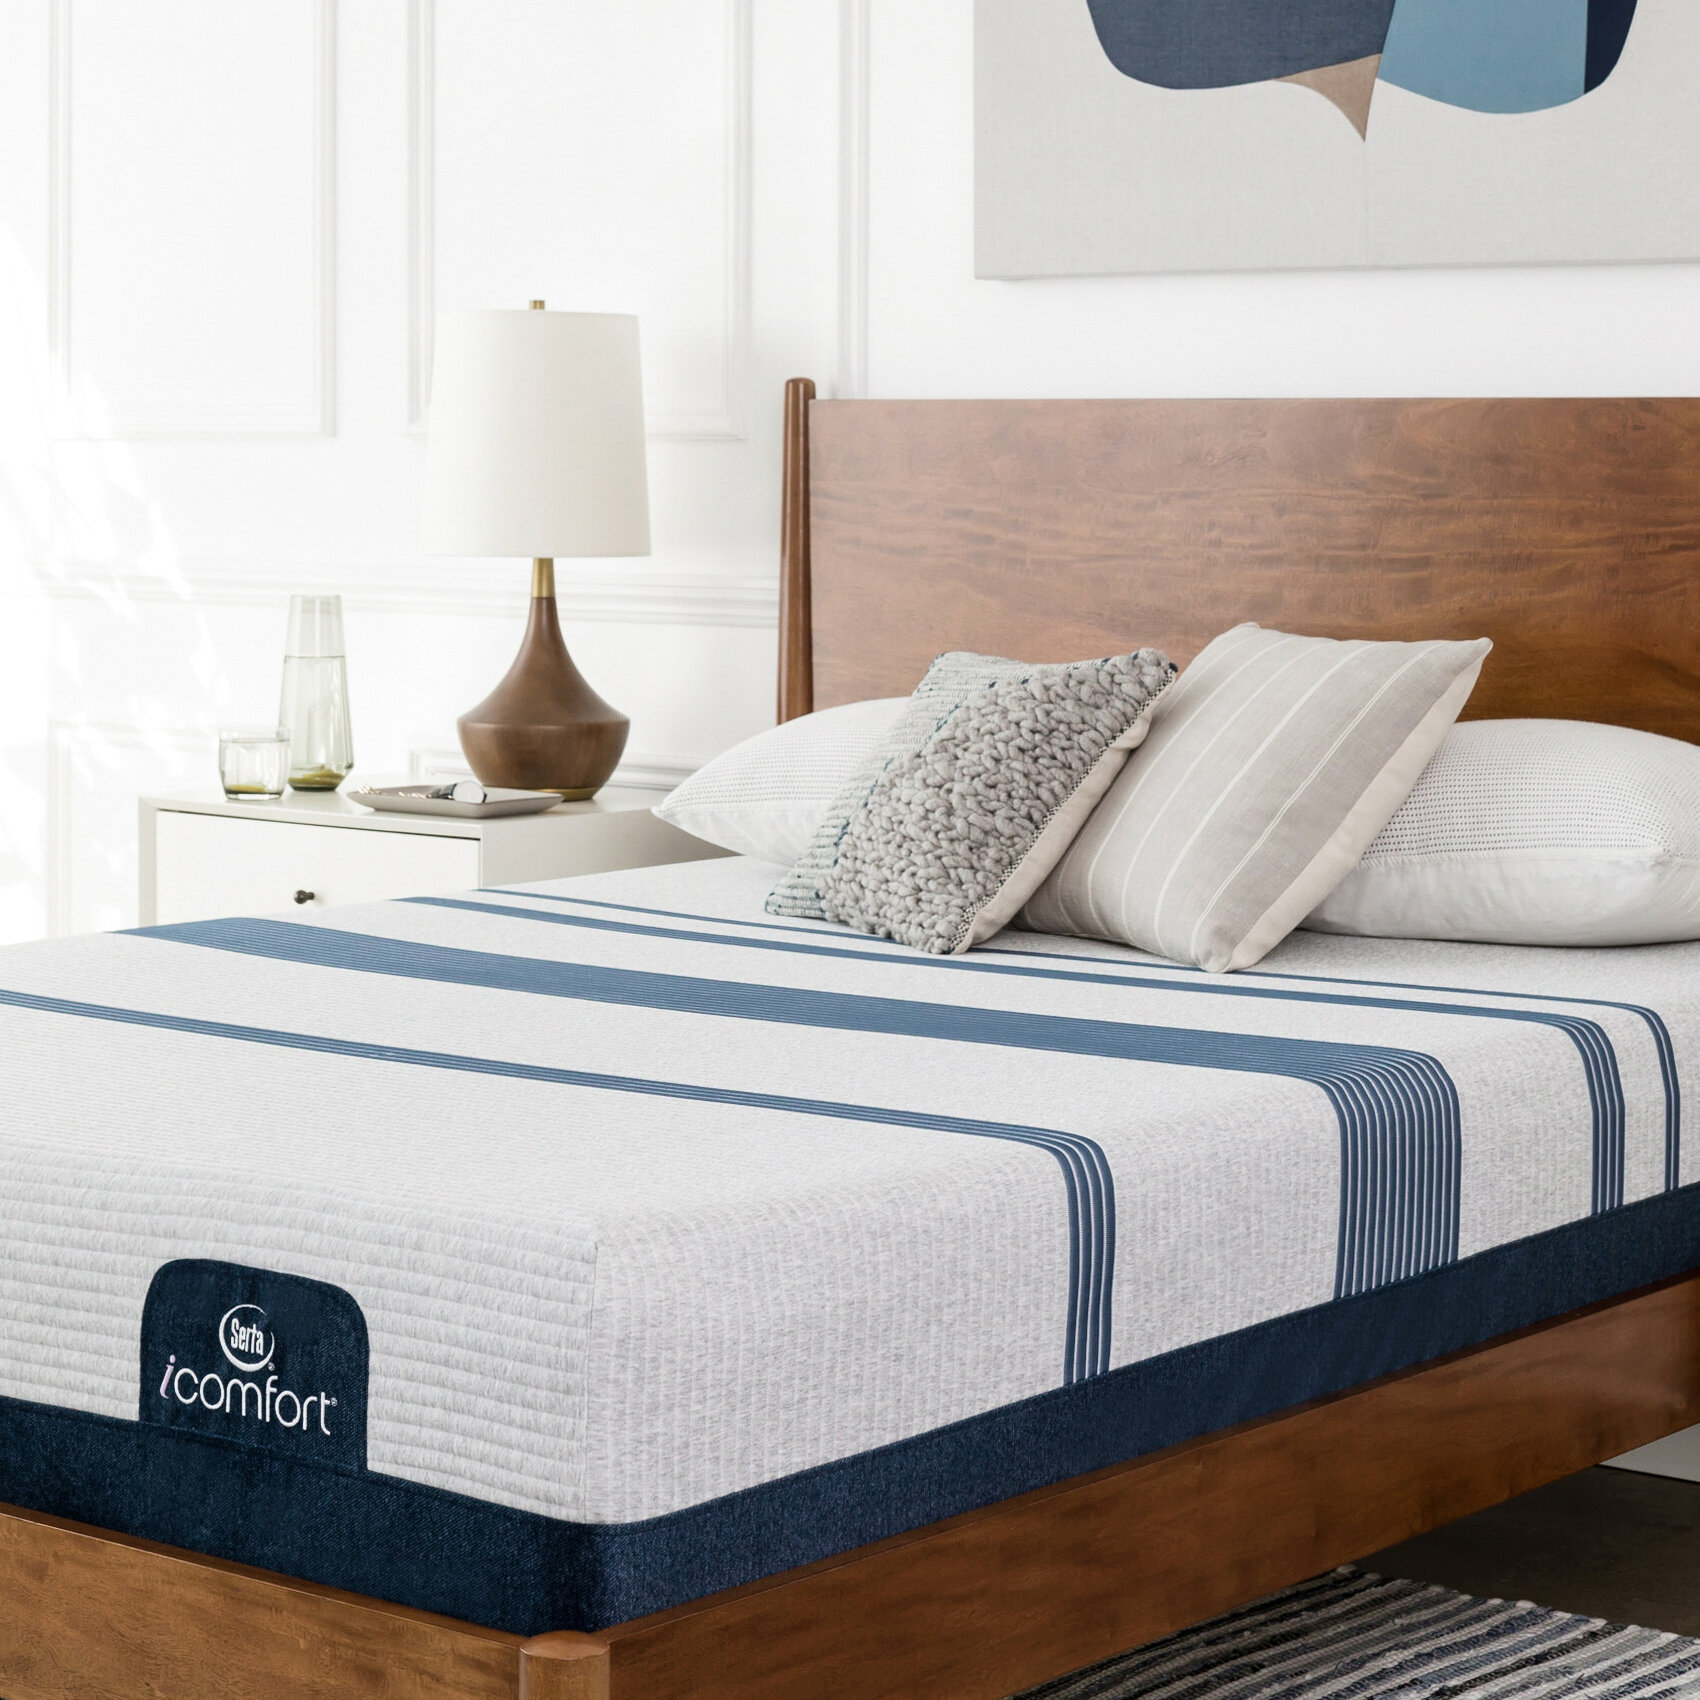 custom adjustable beds queen serta p city top mattress icomfort motion base on pretty bed